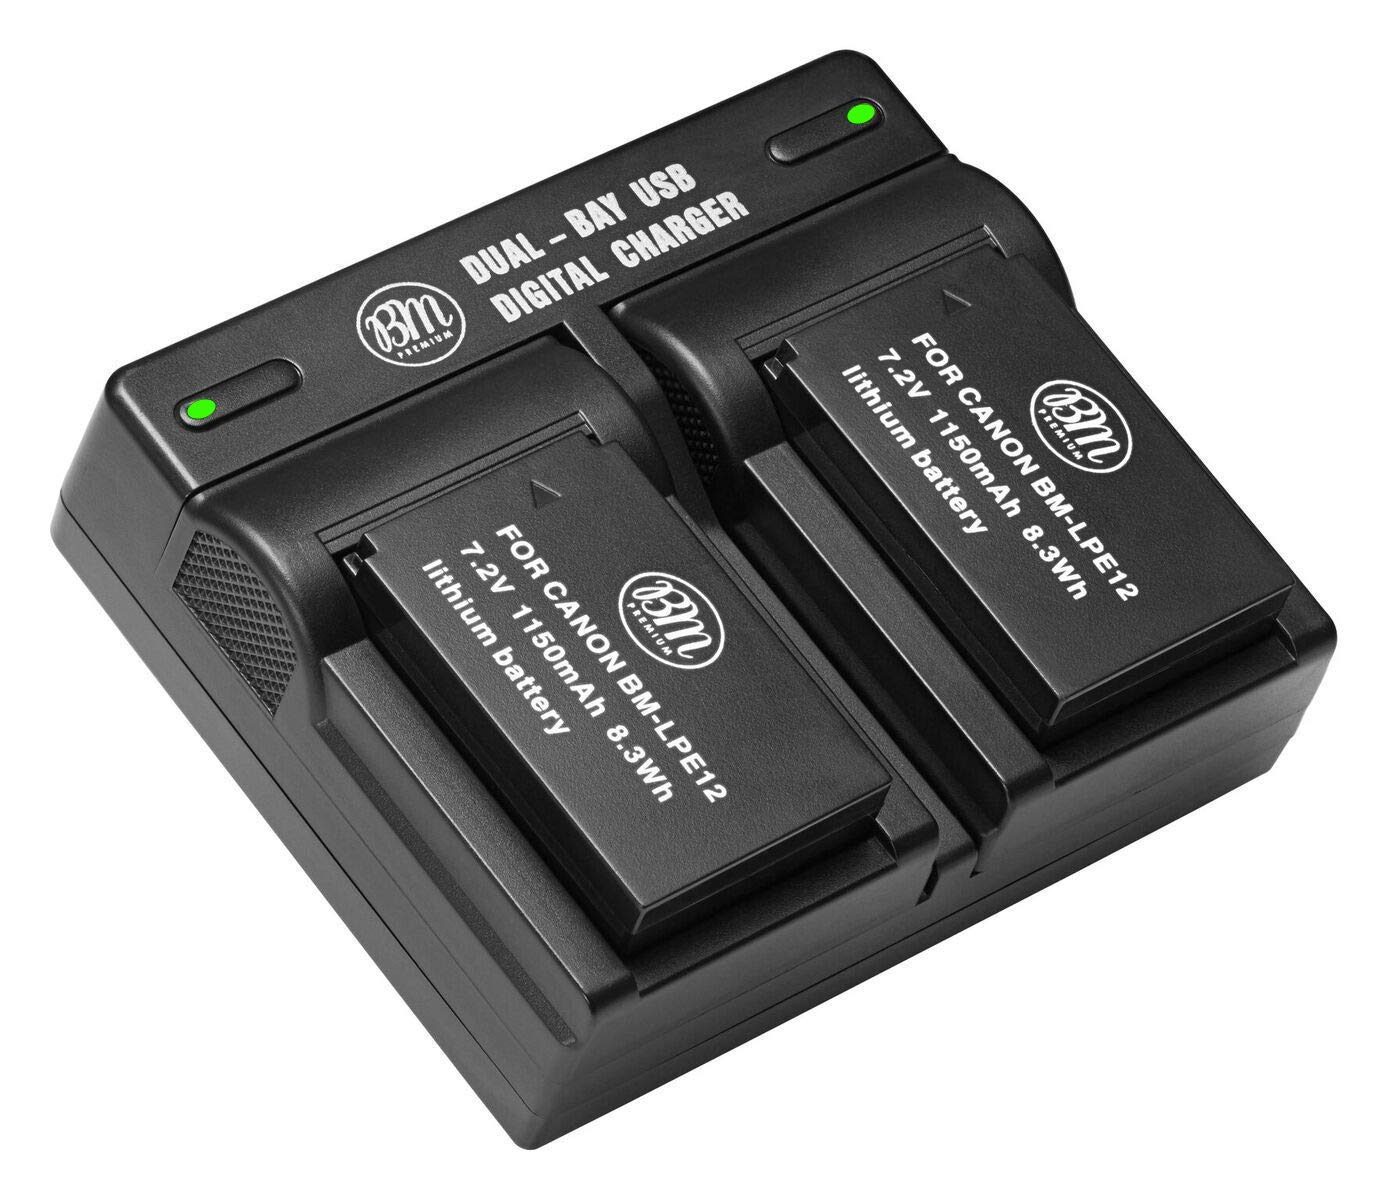 BM Premium 2-Pack of LP-E12 Batteries and USB Dual Battery Charger for Canon SX70 HS, Rebel SL1, EOS-M, EOS M2, EOS M10, EOS M50, EOS M100, EOS M200 Mirrorless Digital Cameras